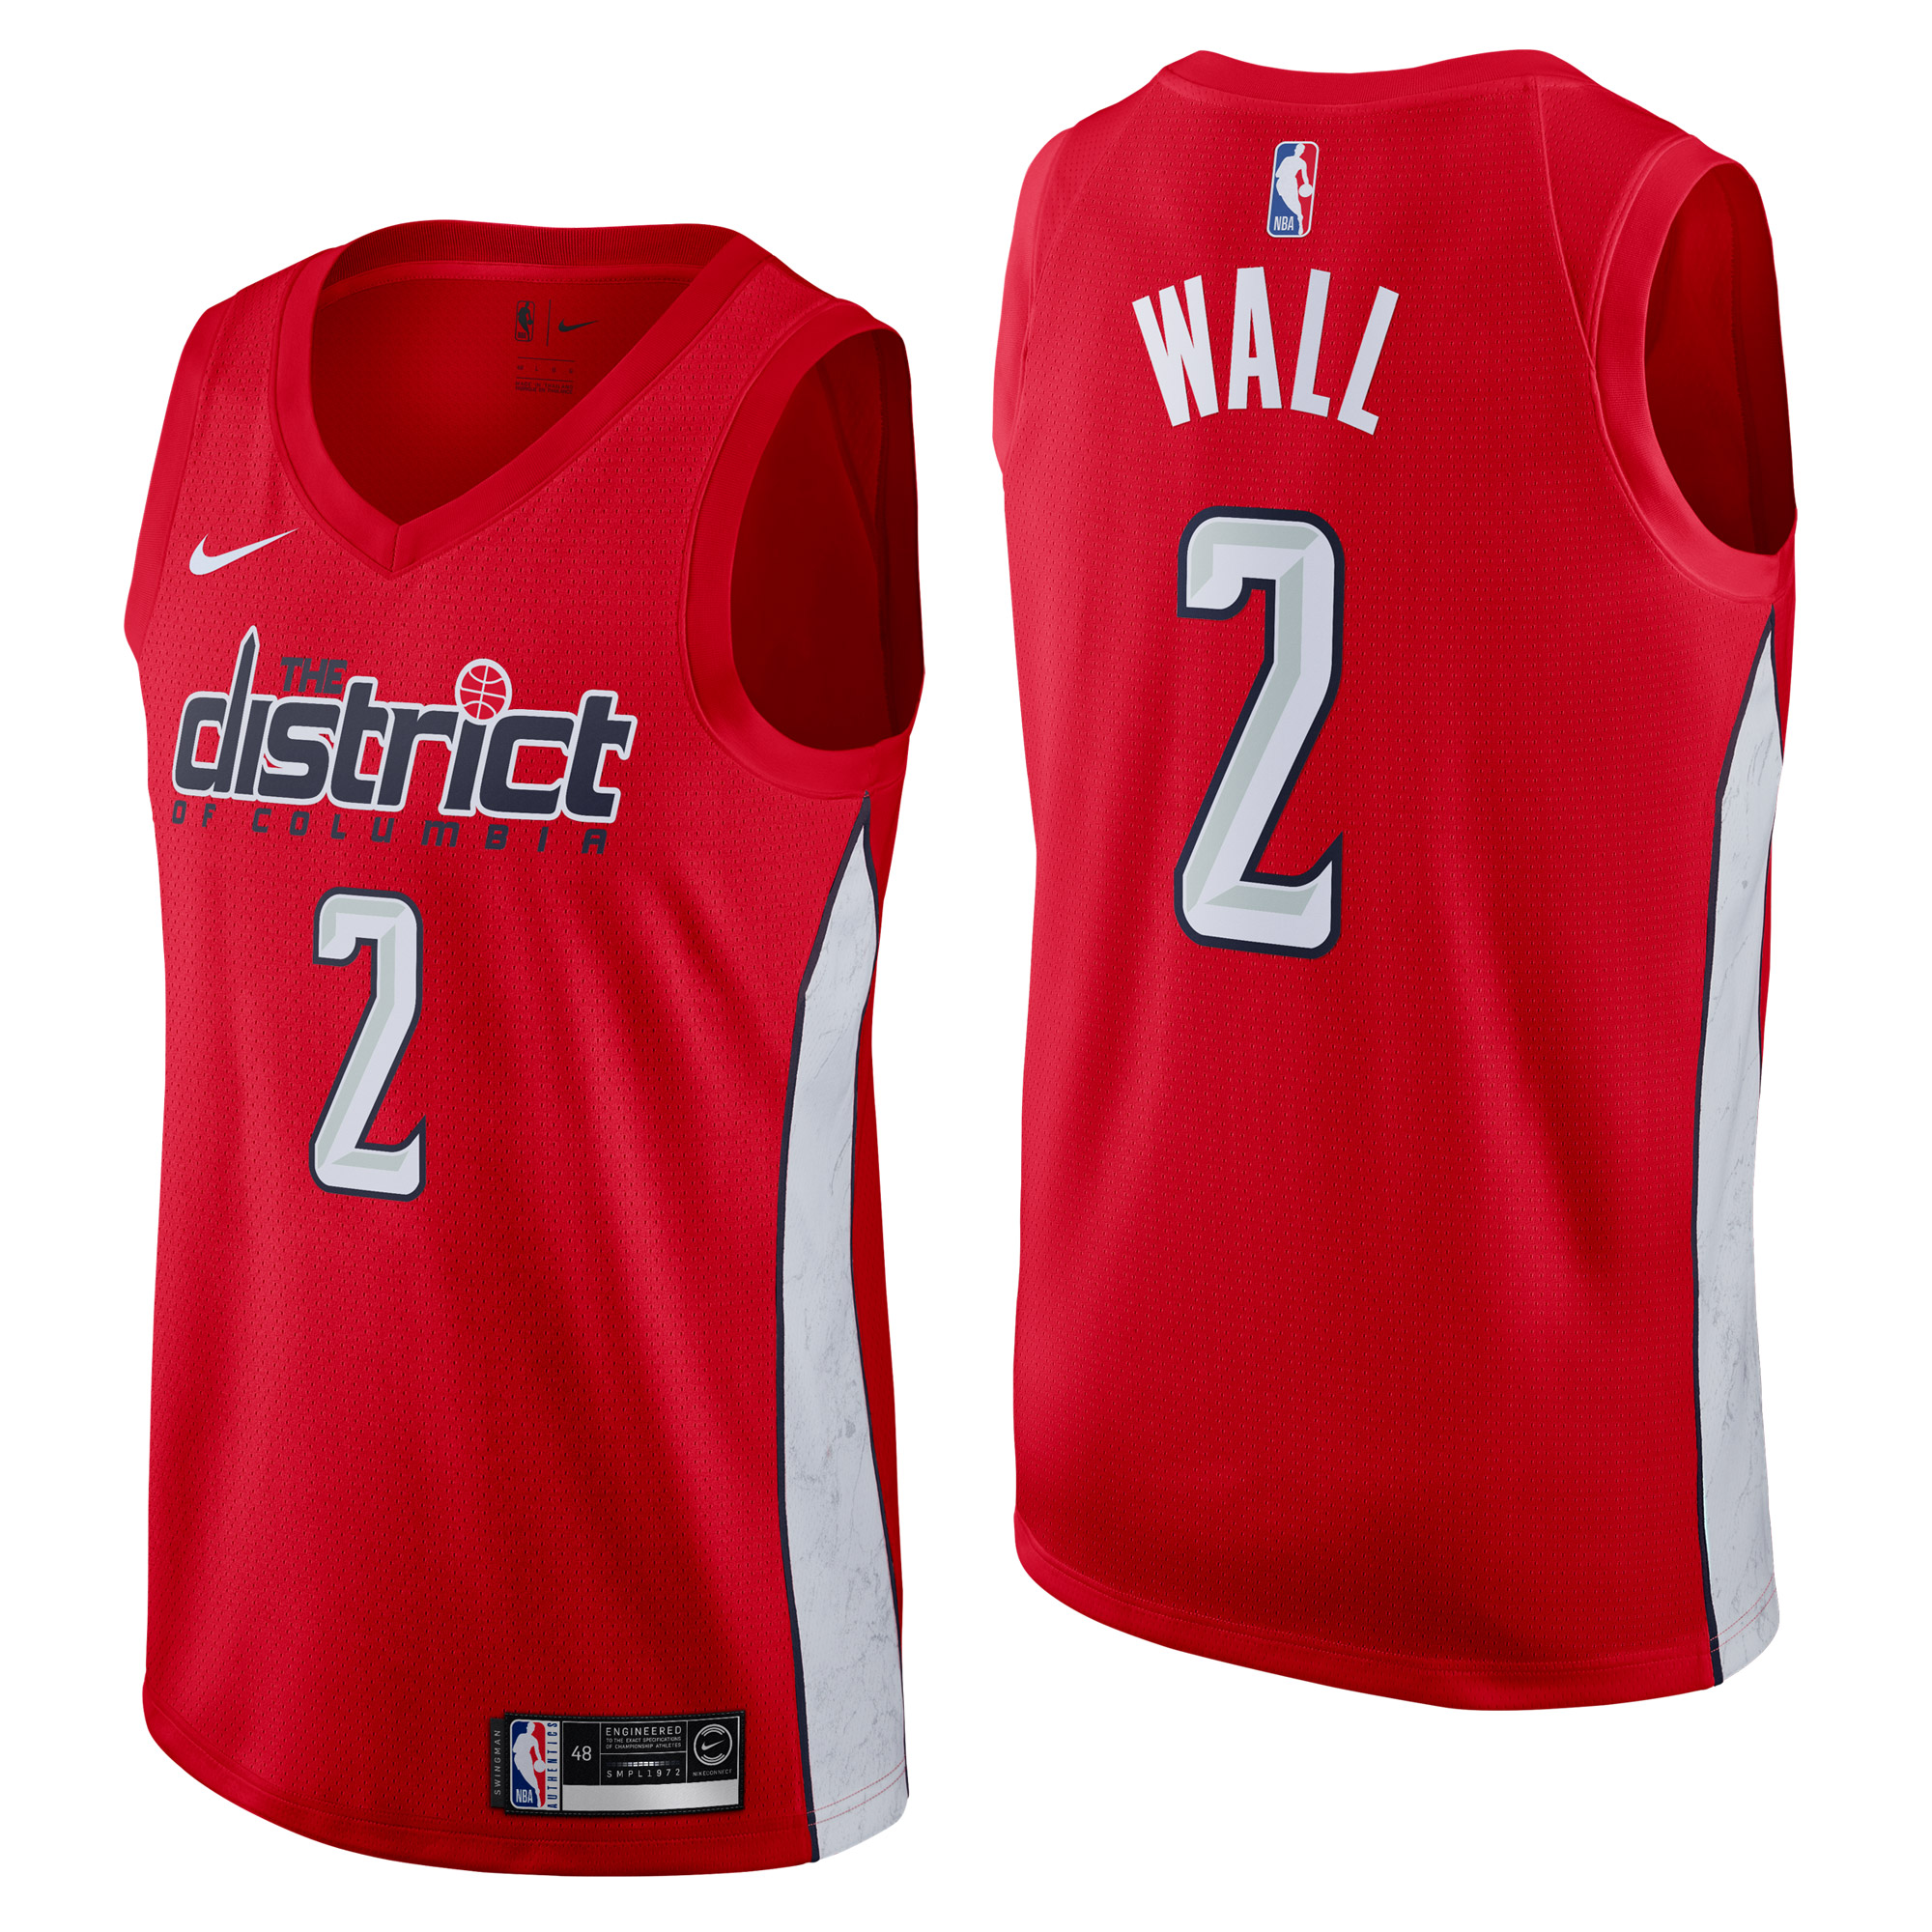 Camiseta Nike Earned Edition Swingman de John Wall de los Washington Wizards para hombre